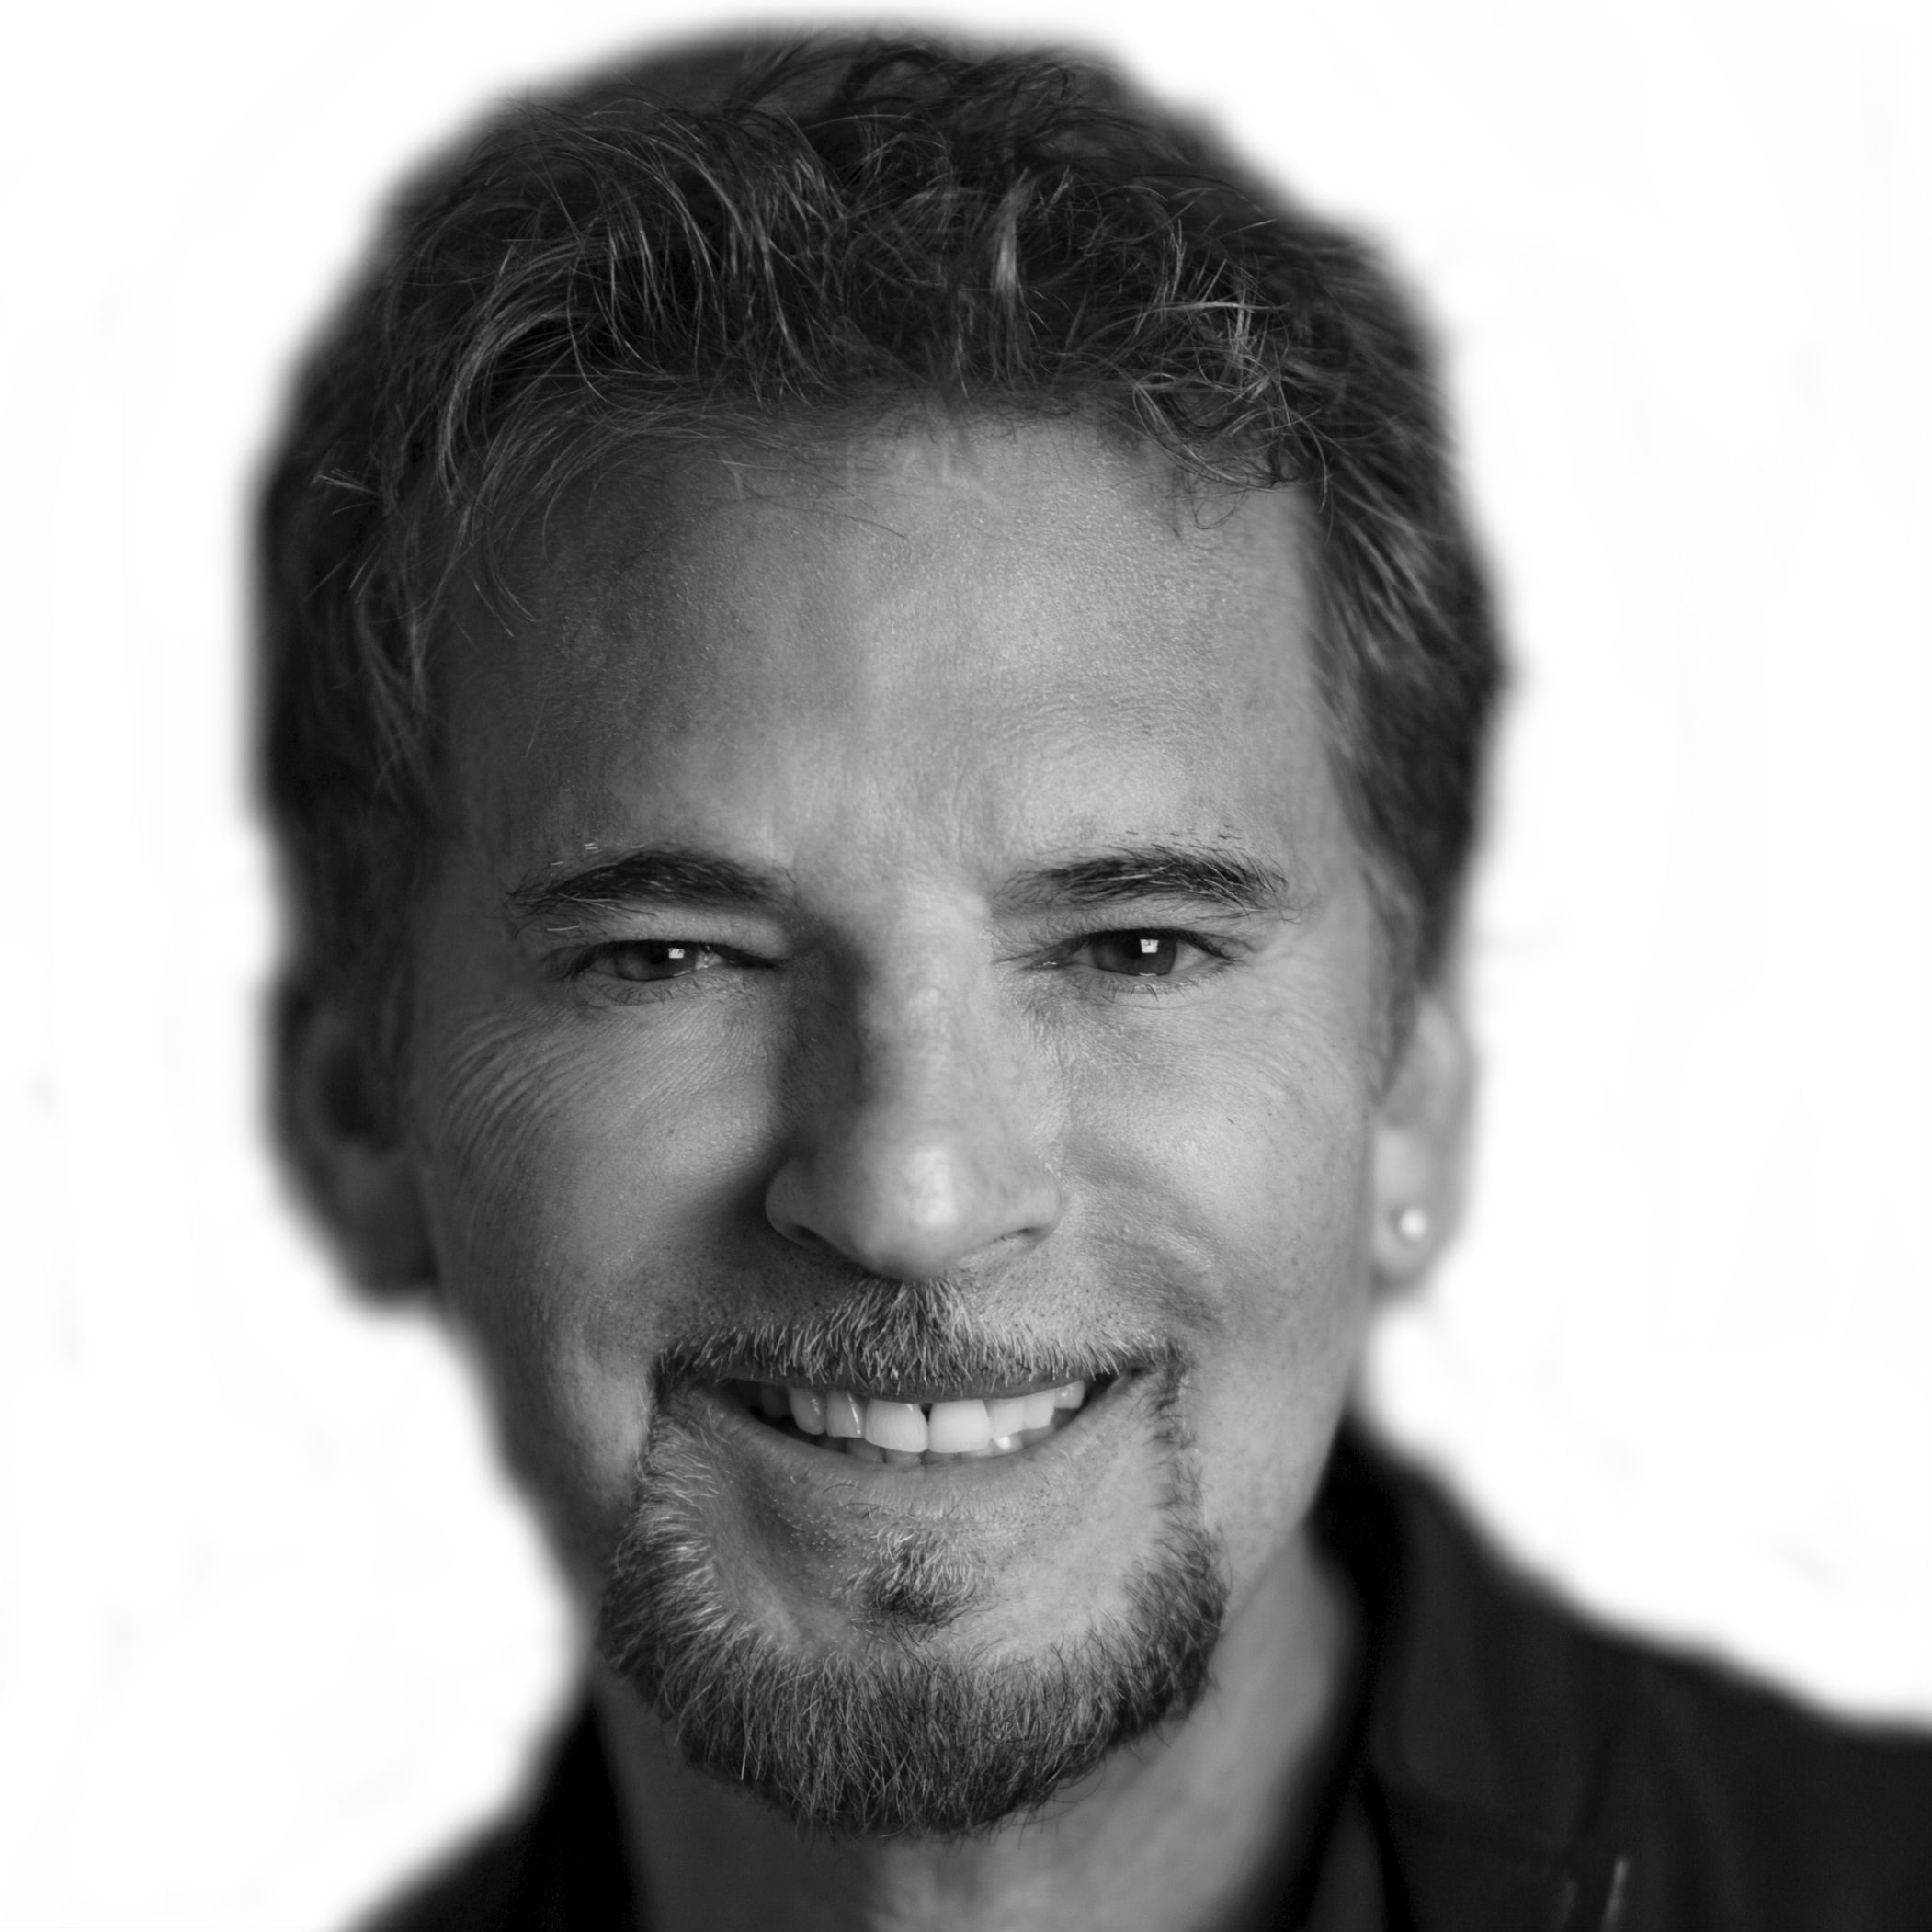 Kenny Loggins Headshot